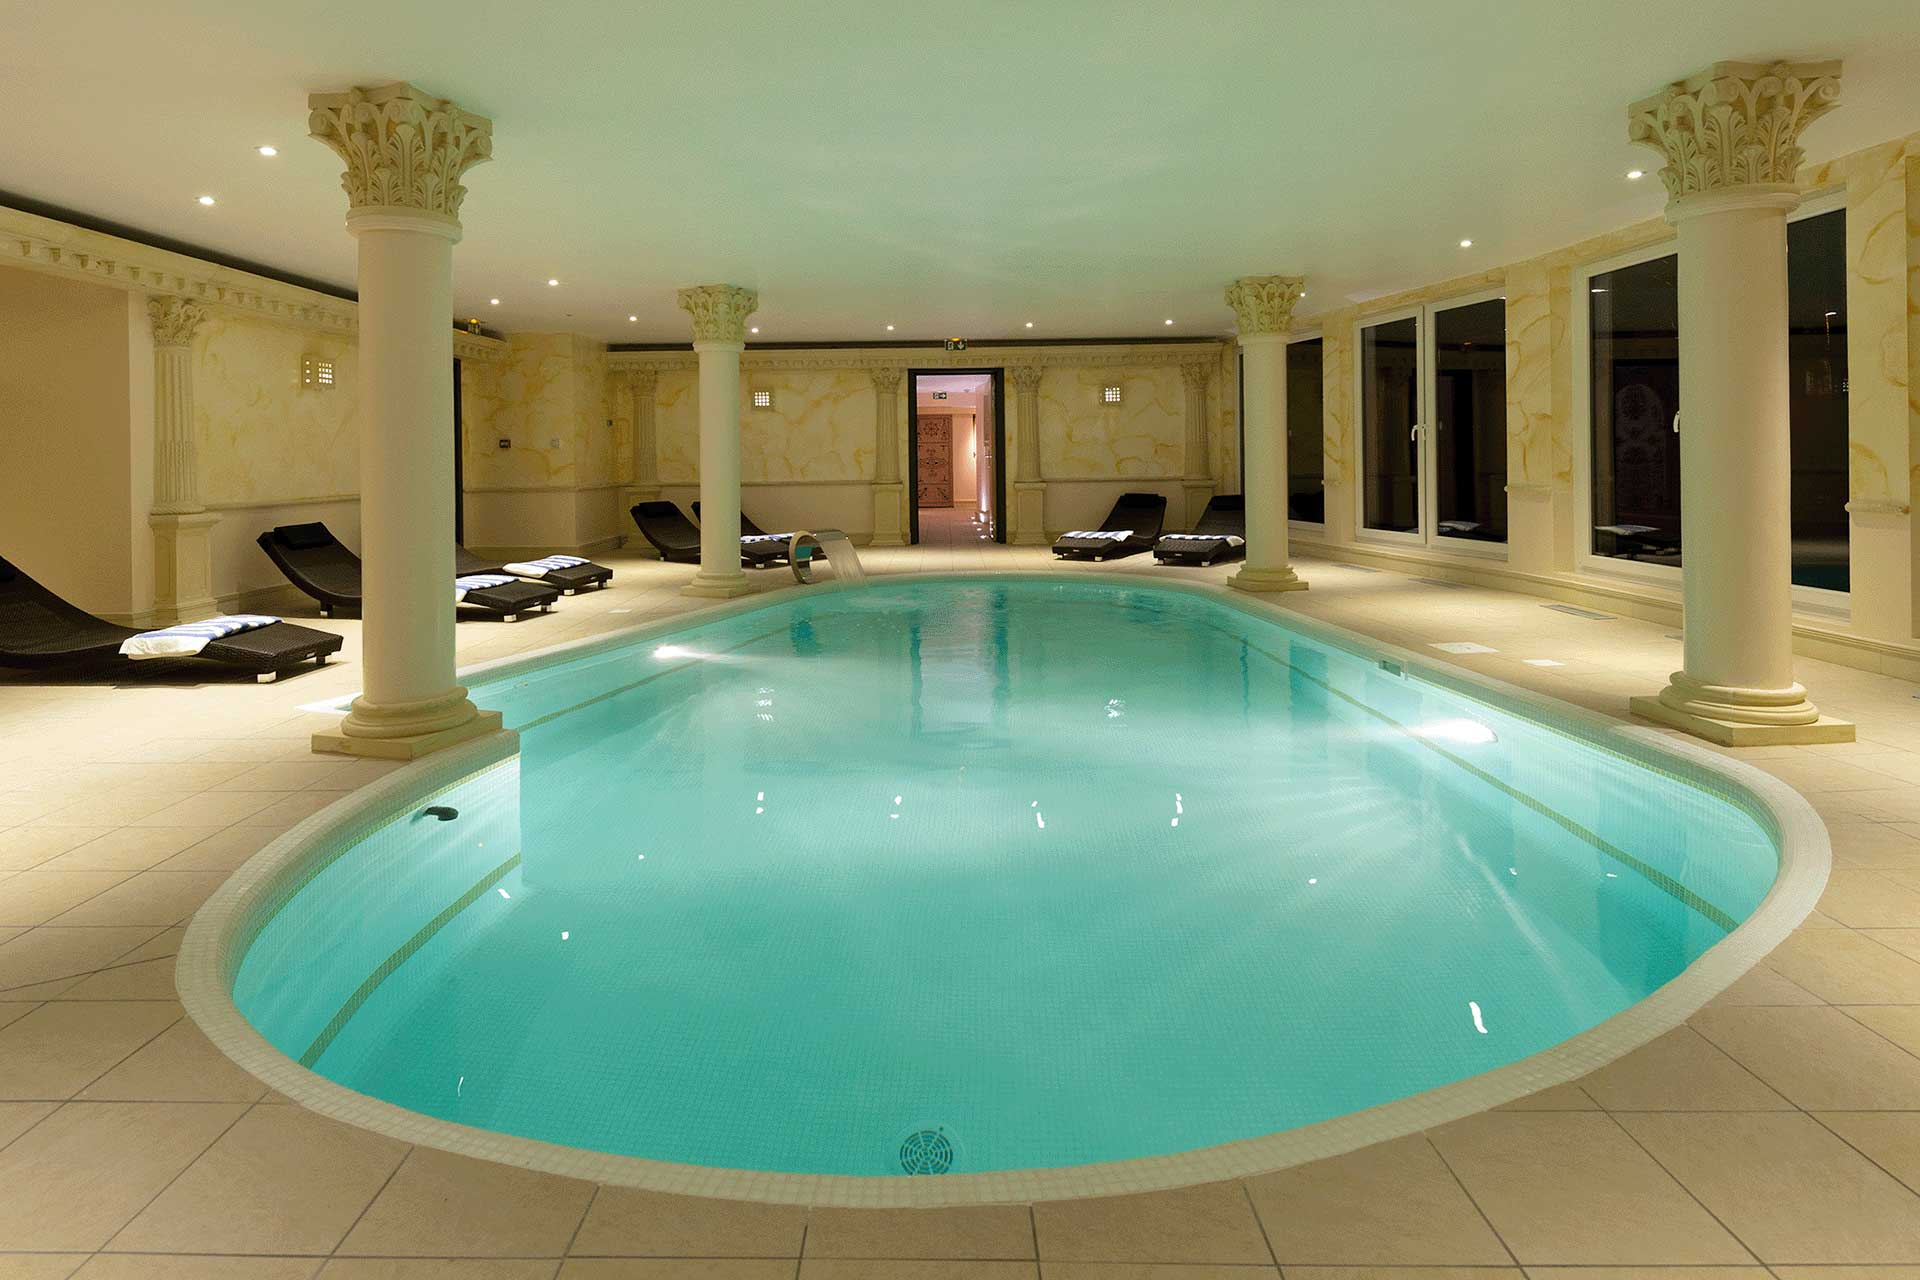 Spa hotel et wellness en alsace grotte a sel piscine hammam for Tarif piscine enterree